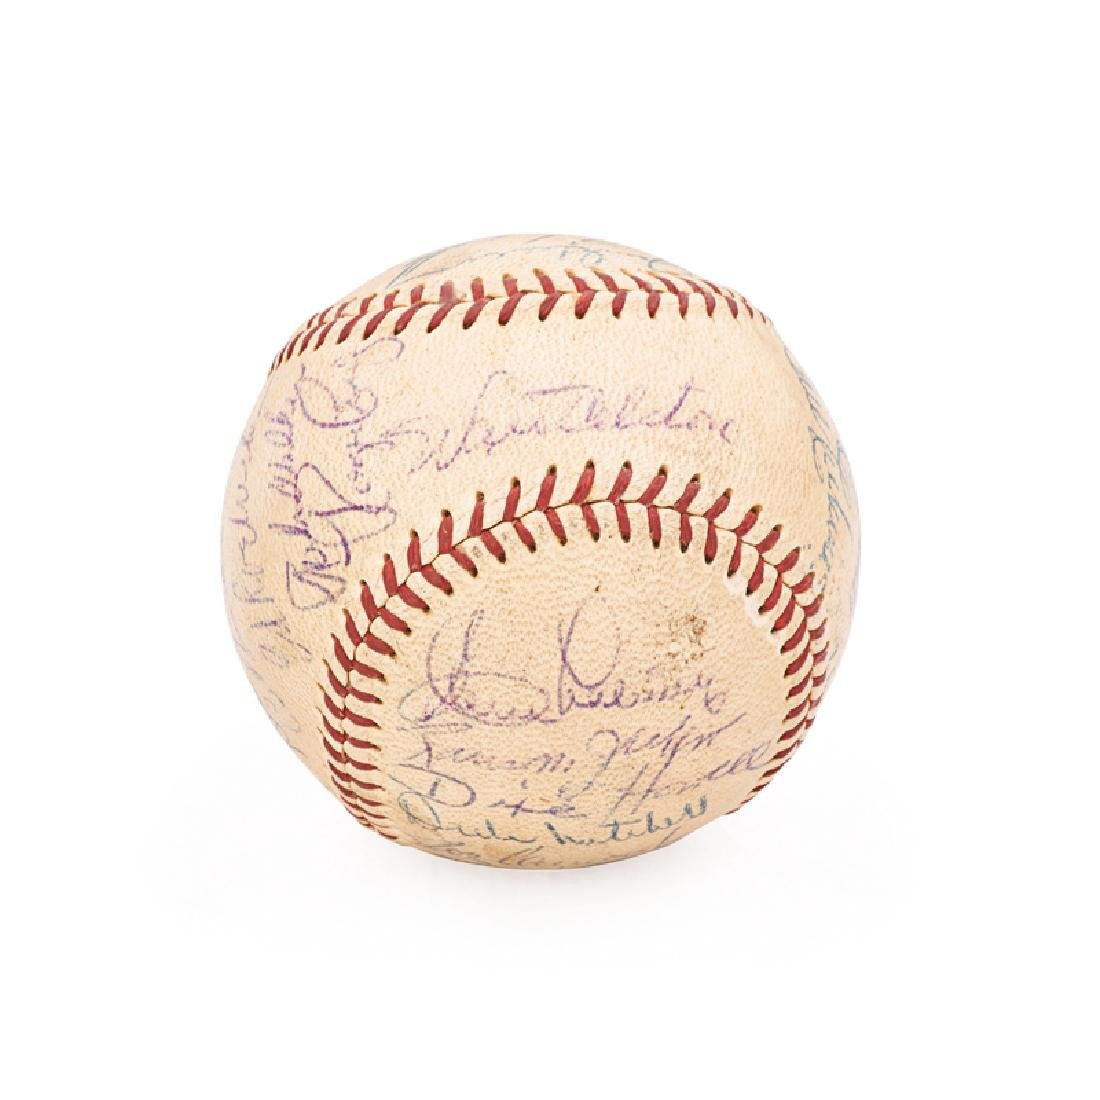 1956 BROOKLYN DODGERS SIGNED BASEBALL - 5